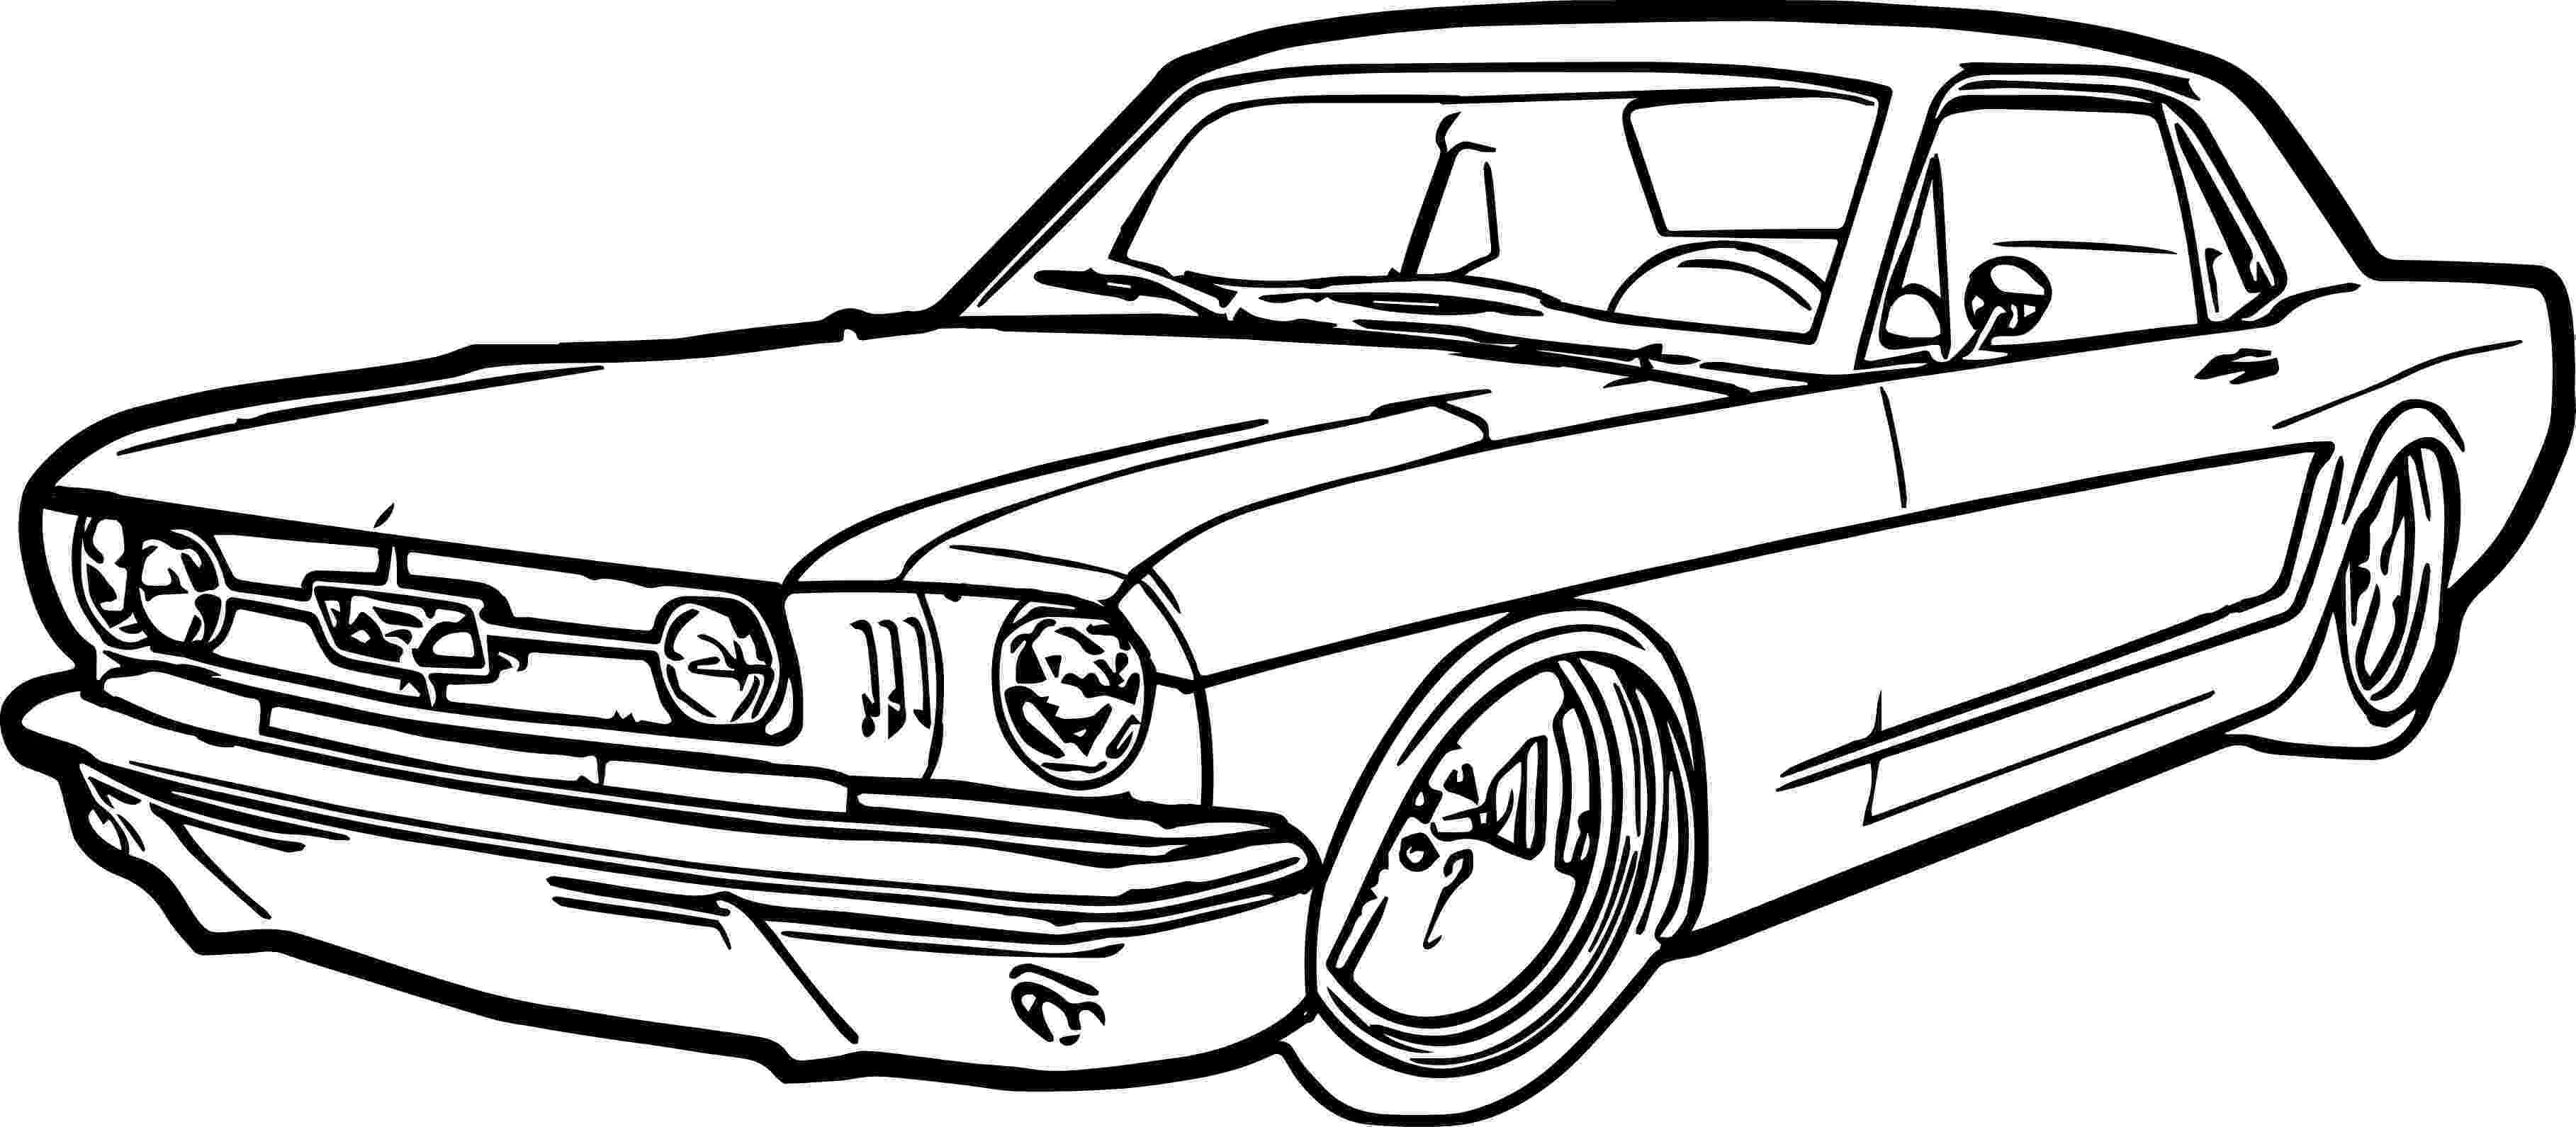 car coloring pictures ferrari sport car coloring page projects to try cars car pictures coloring